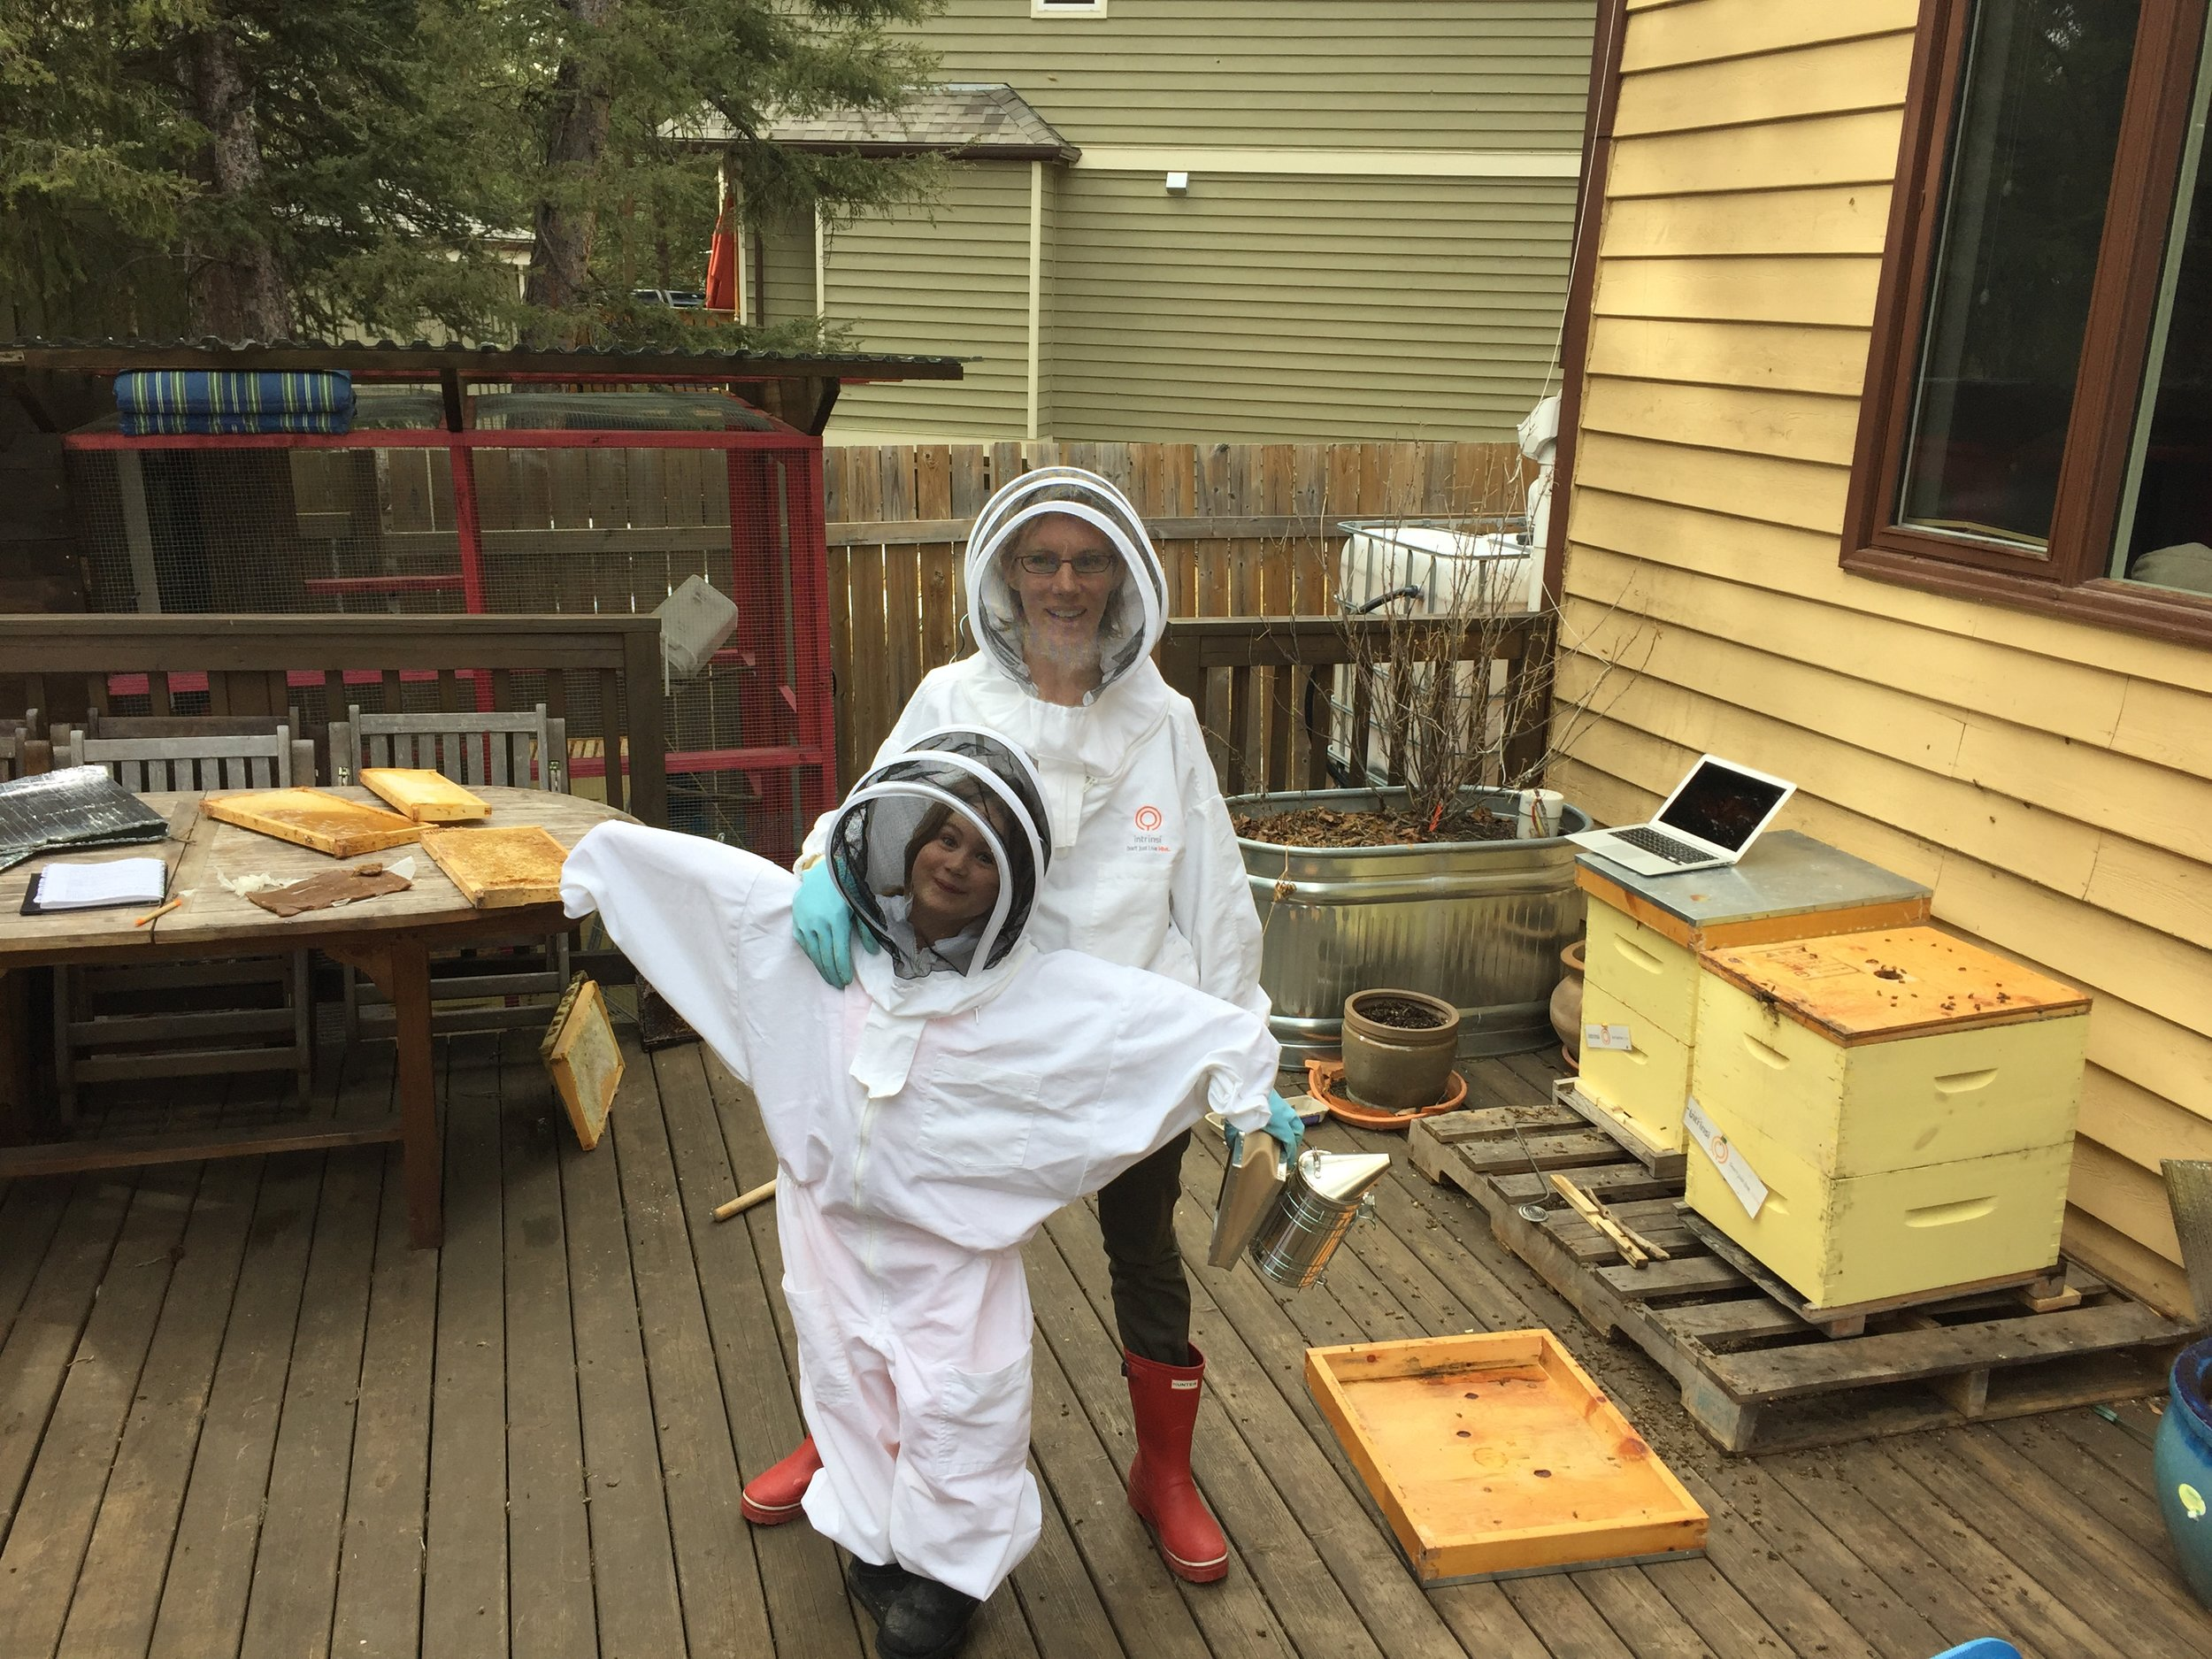 6 year old Nina and I beekeeping on our back deck (this was before my bees decided to use our neighbours hot tub as their source of water and die en masse in the hot tub and prevent the hot tub owners from using their hot tub!). This was my first solo attempt at beekeeping, hence the computer open which was guiding me step by step from a blog post on what to do!